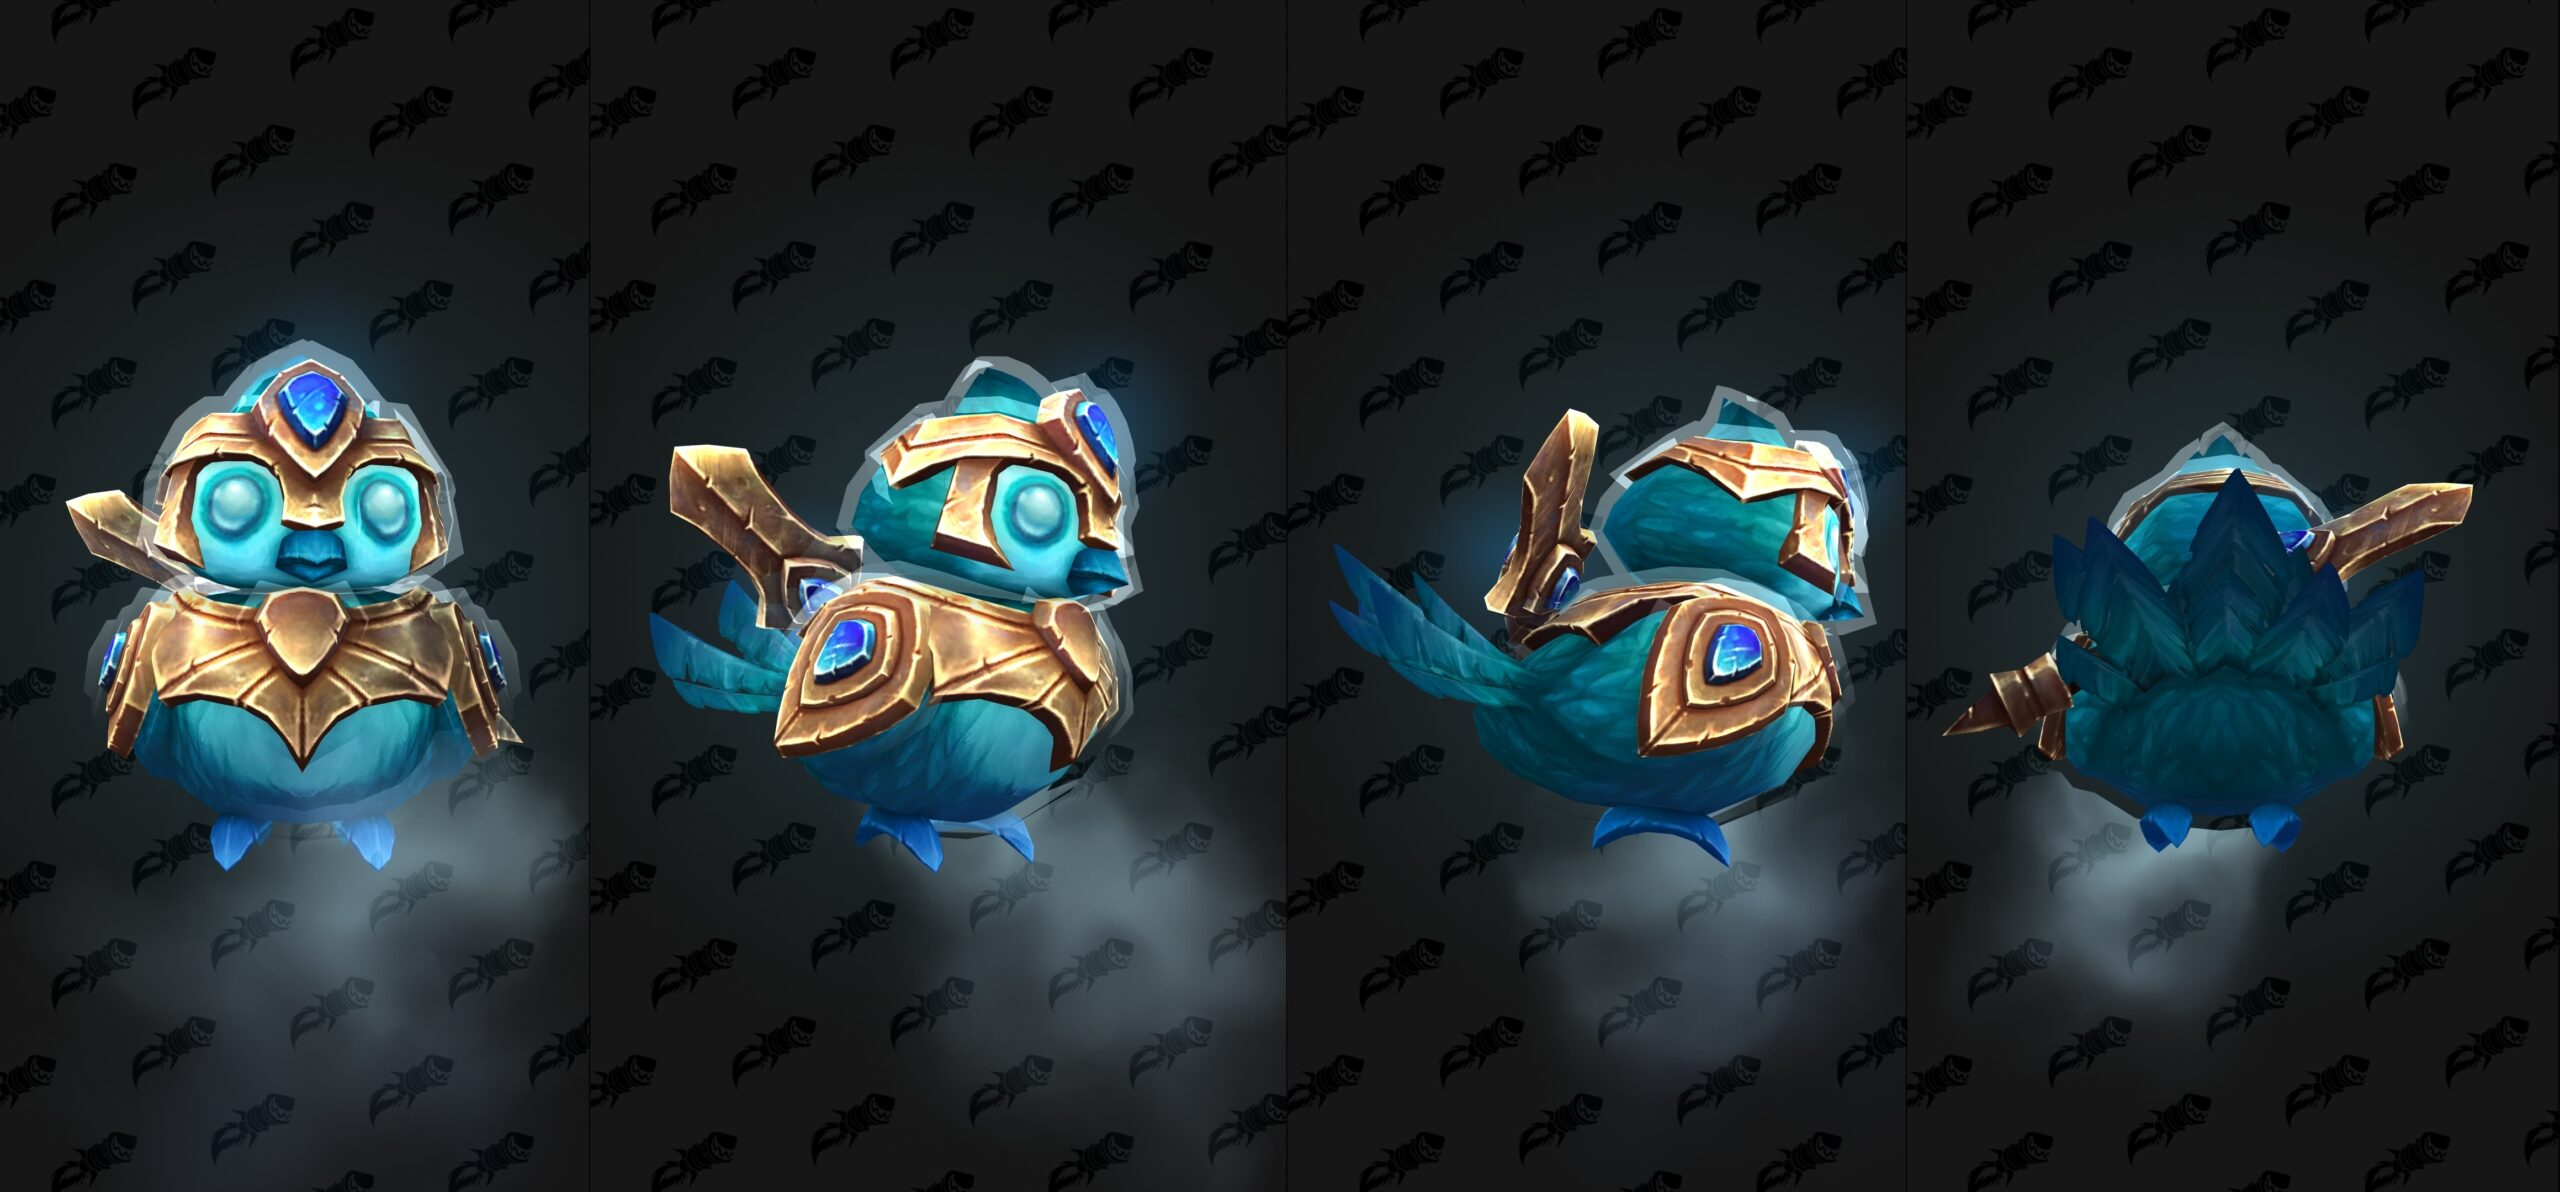 patch9.1 pepe kyrian scaled